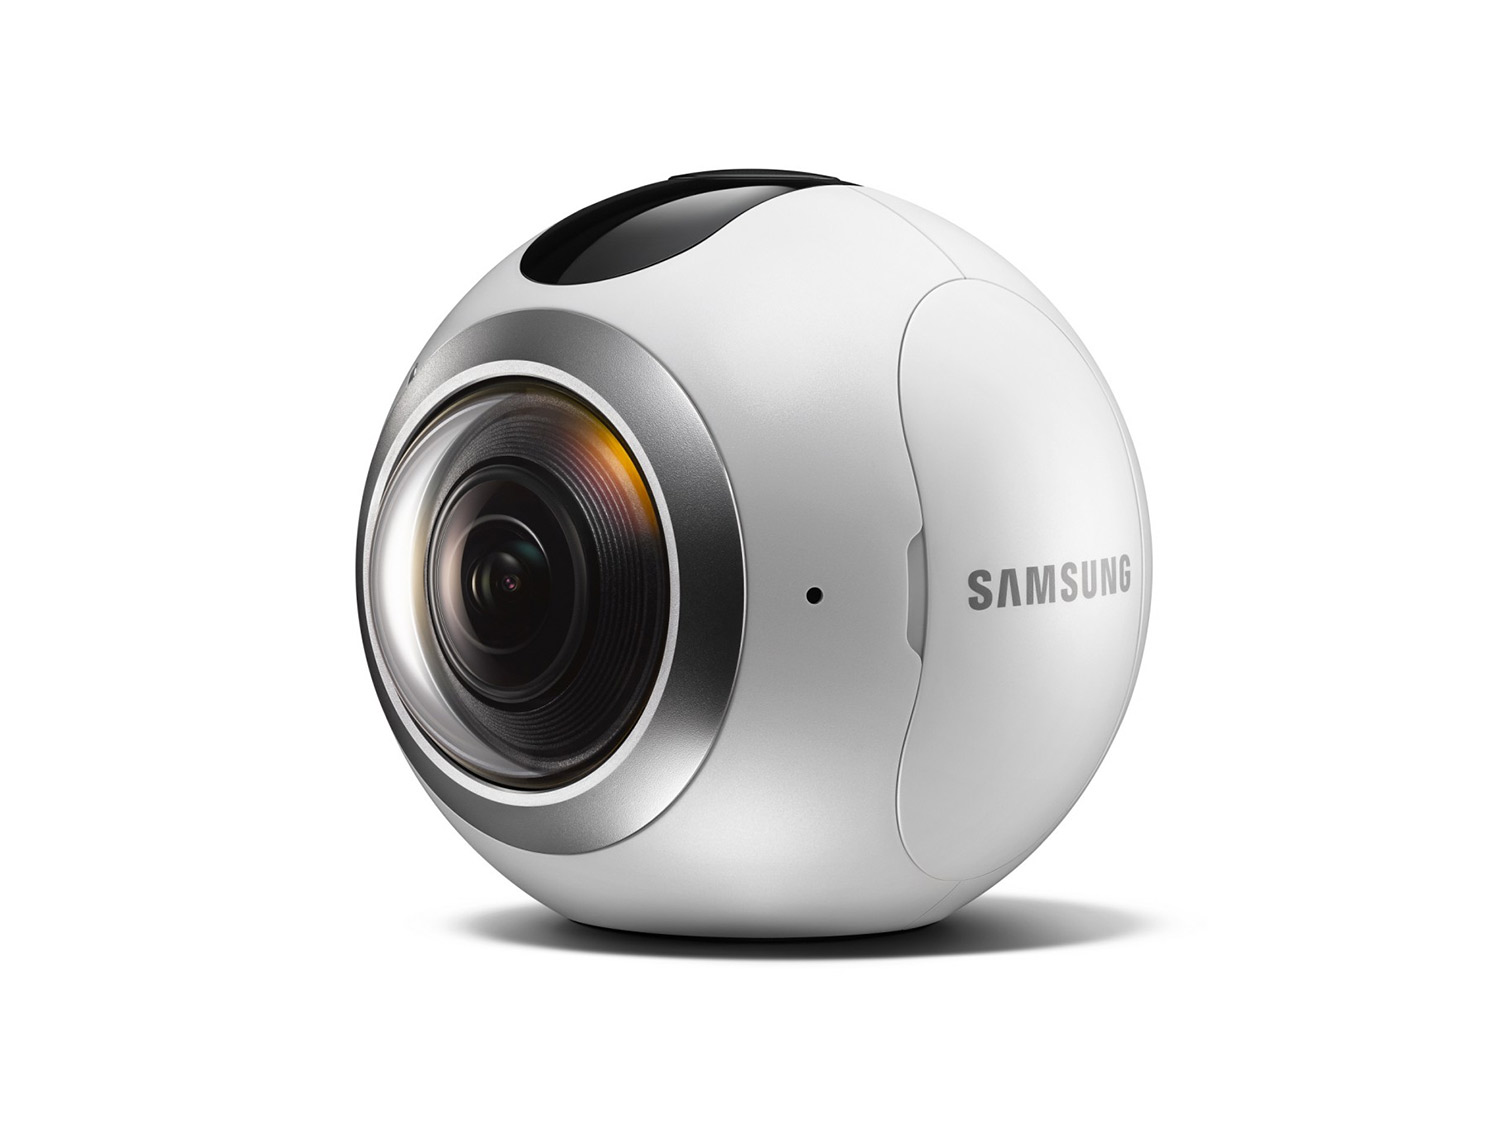 Samsung Gear 360 panoráma kamera White SM-C200NZWAXEH